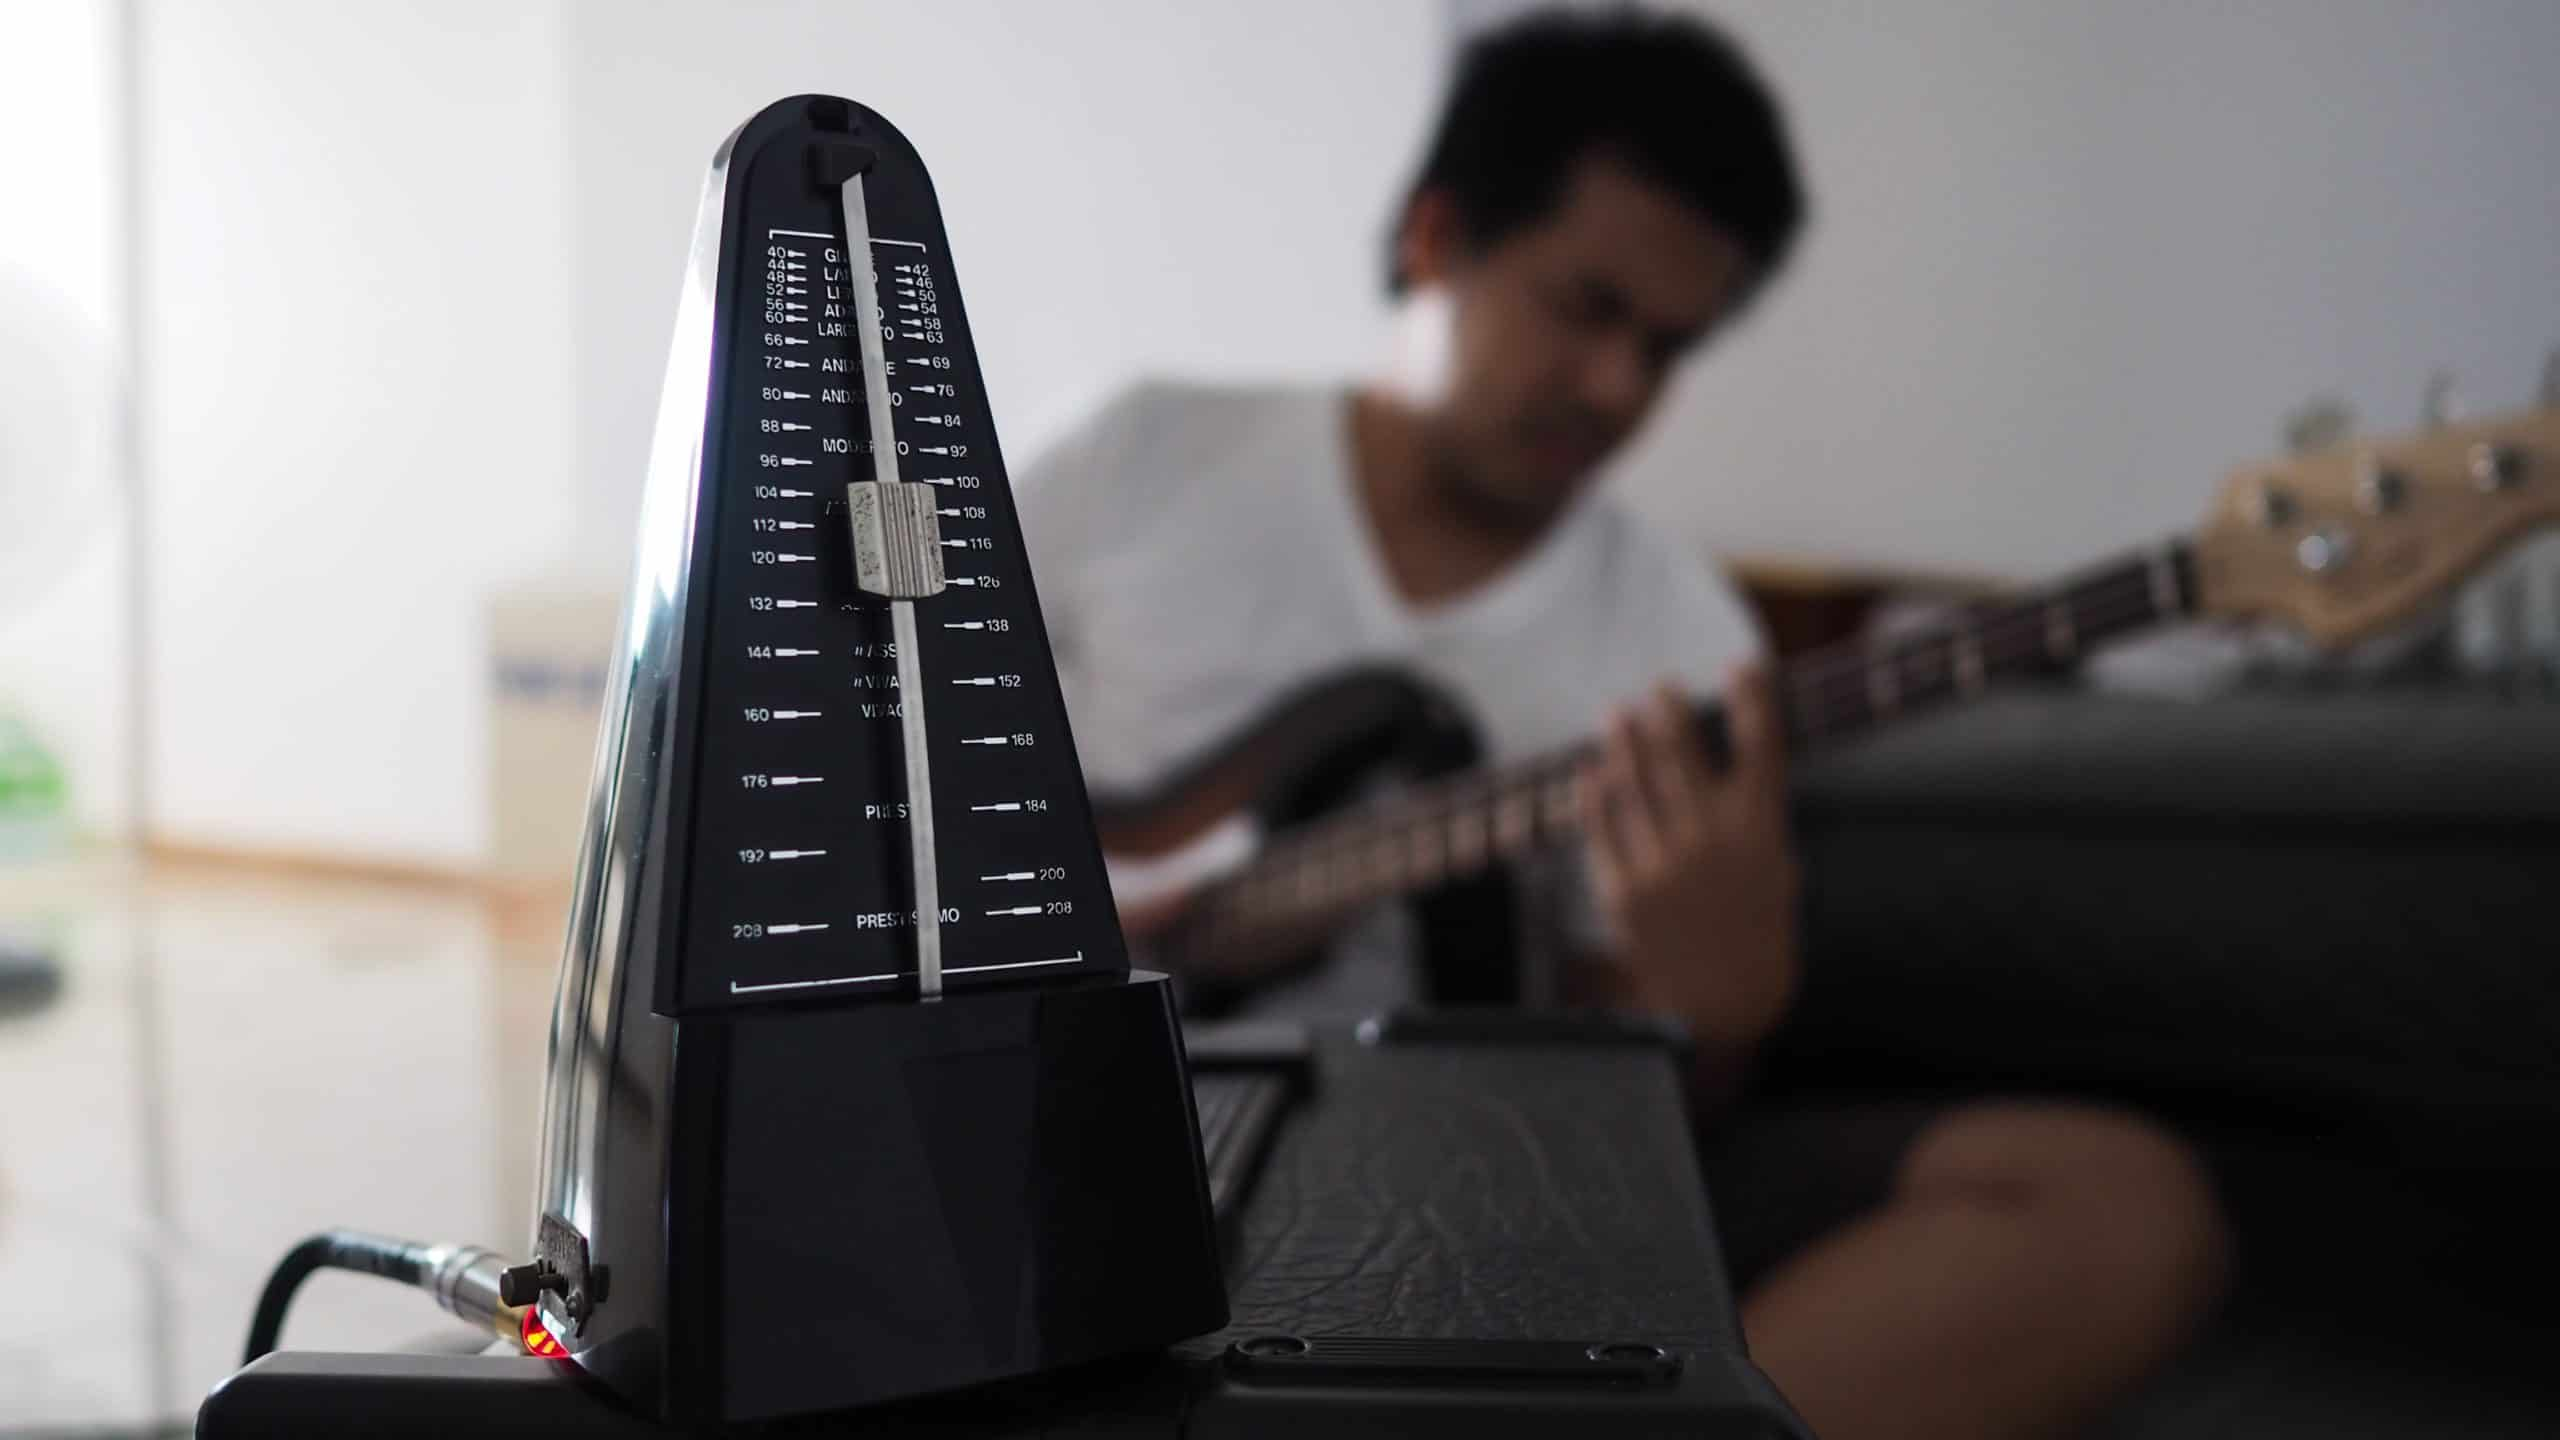 Black metronome is used by musician to help keep a steady tempo as he play